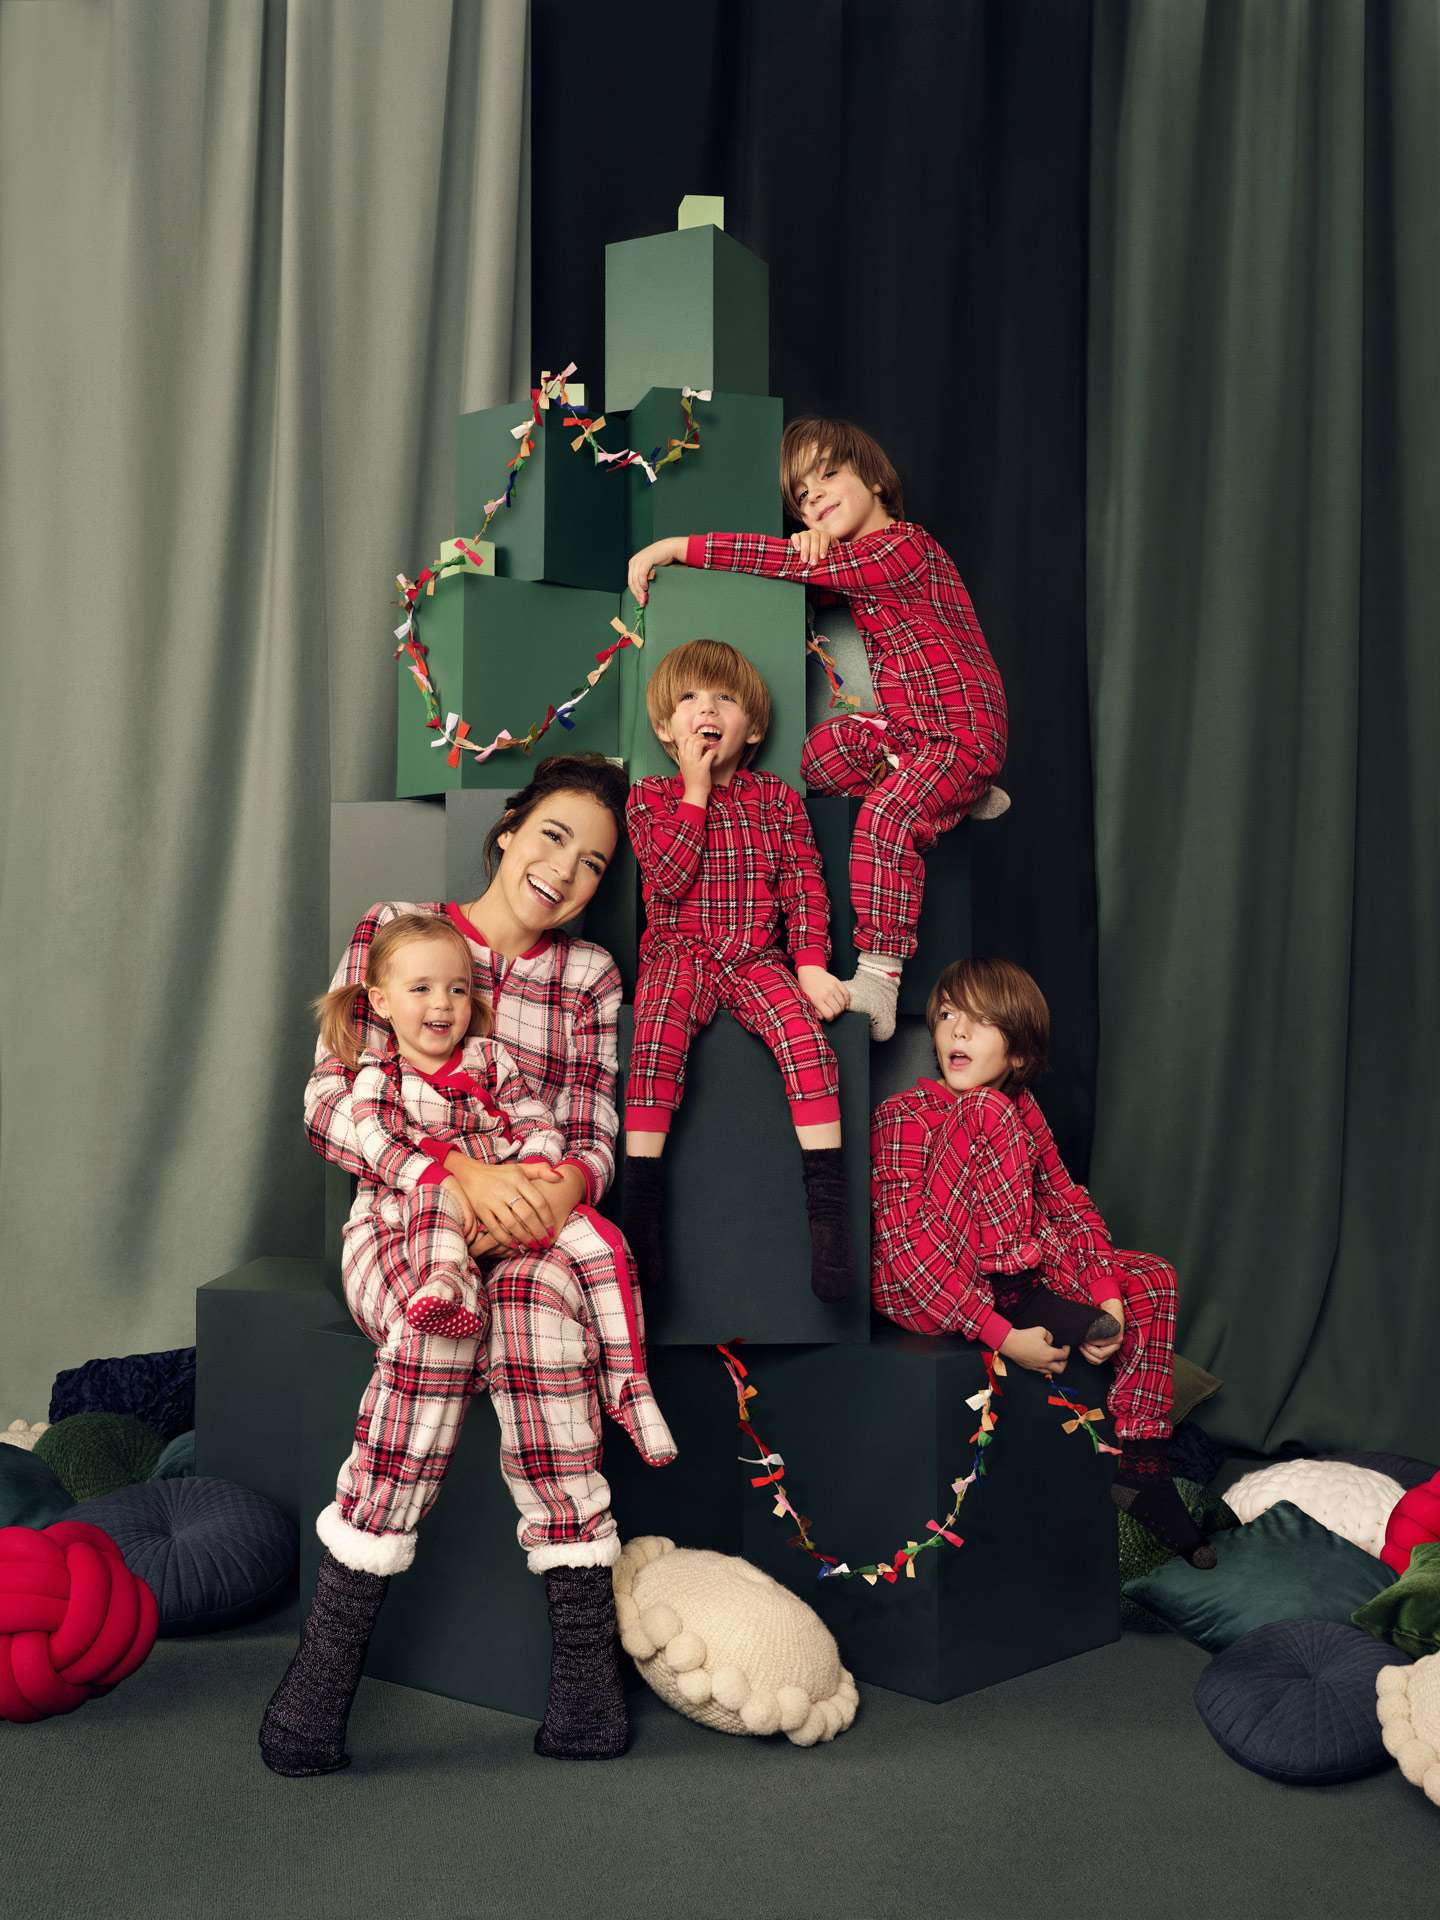 portrait of family of Maman Caffeine in festive decor wearing matching pajamas with her four children for Aubainerie Christmas campaign about united family photographed and filmed by Maxyme G Delisle with artistic direction and set design by Studio TB